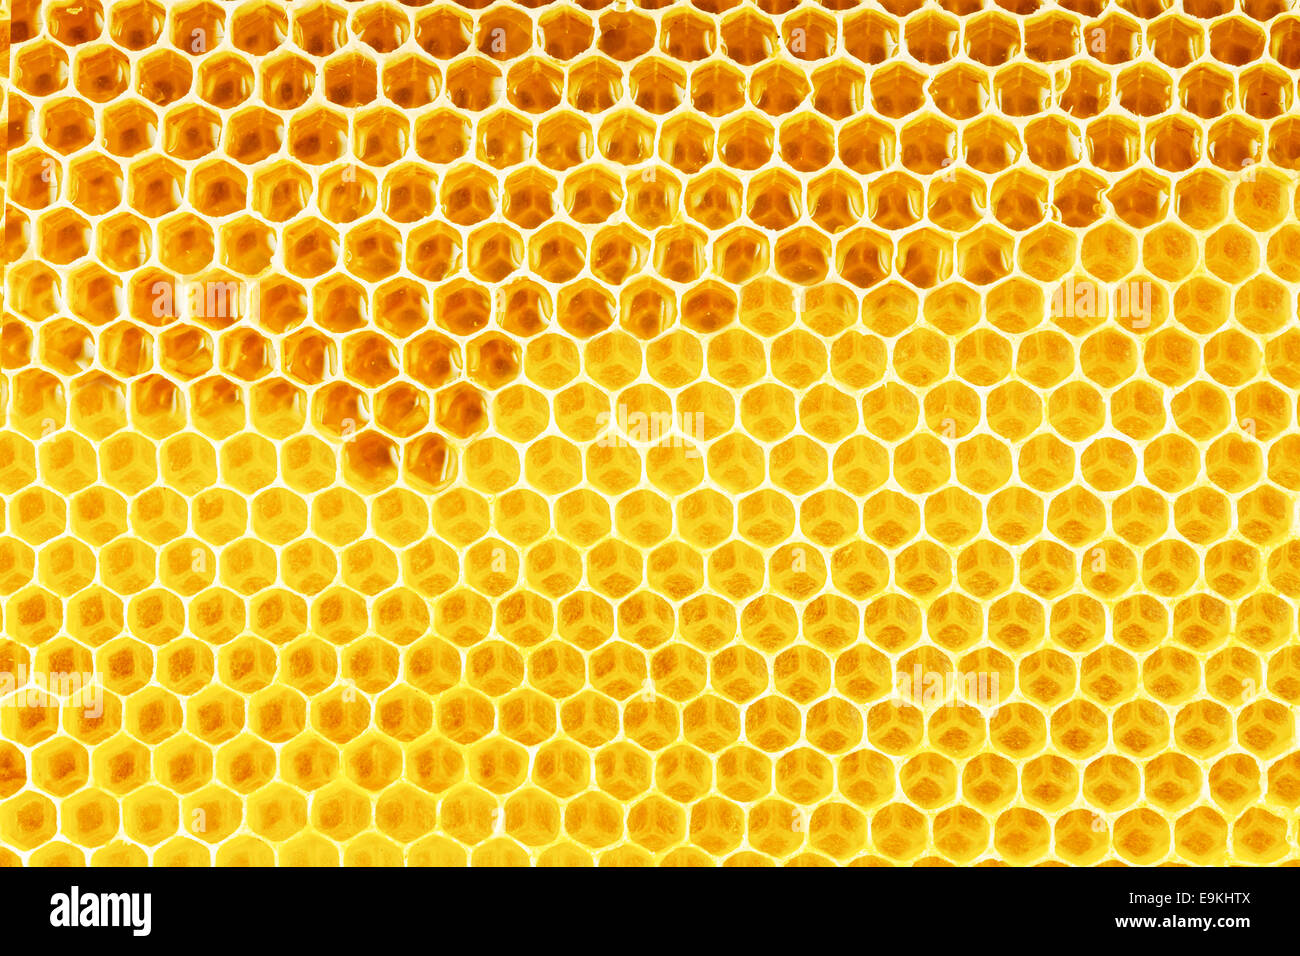 Natural honey in honeycomb background stock photo royalty free natural honey in honeycomb background voltagebd Image collections